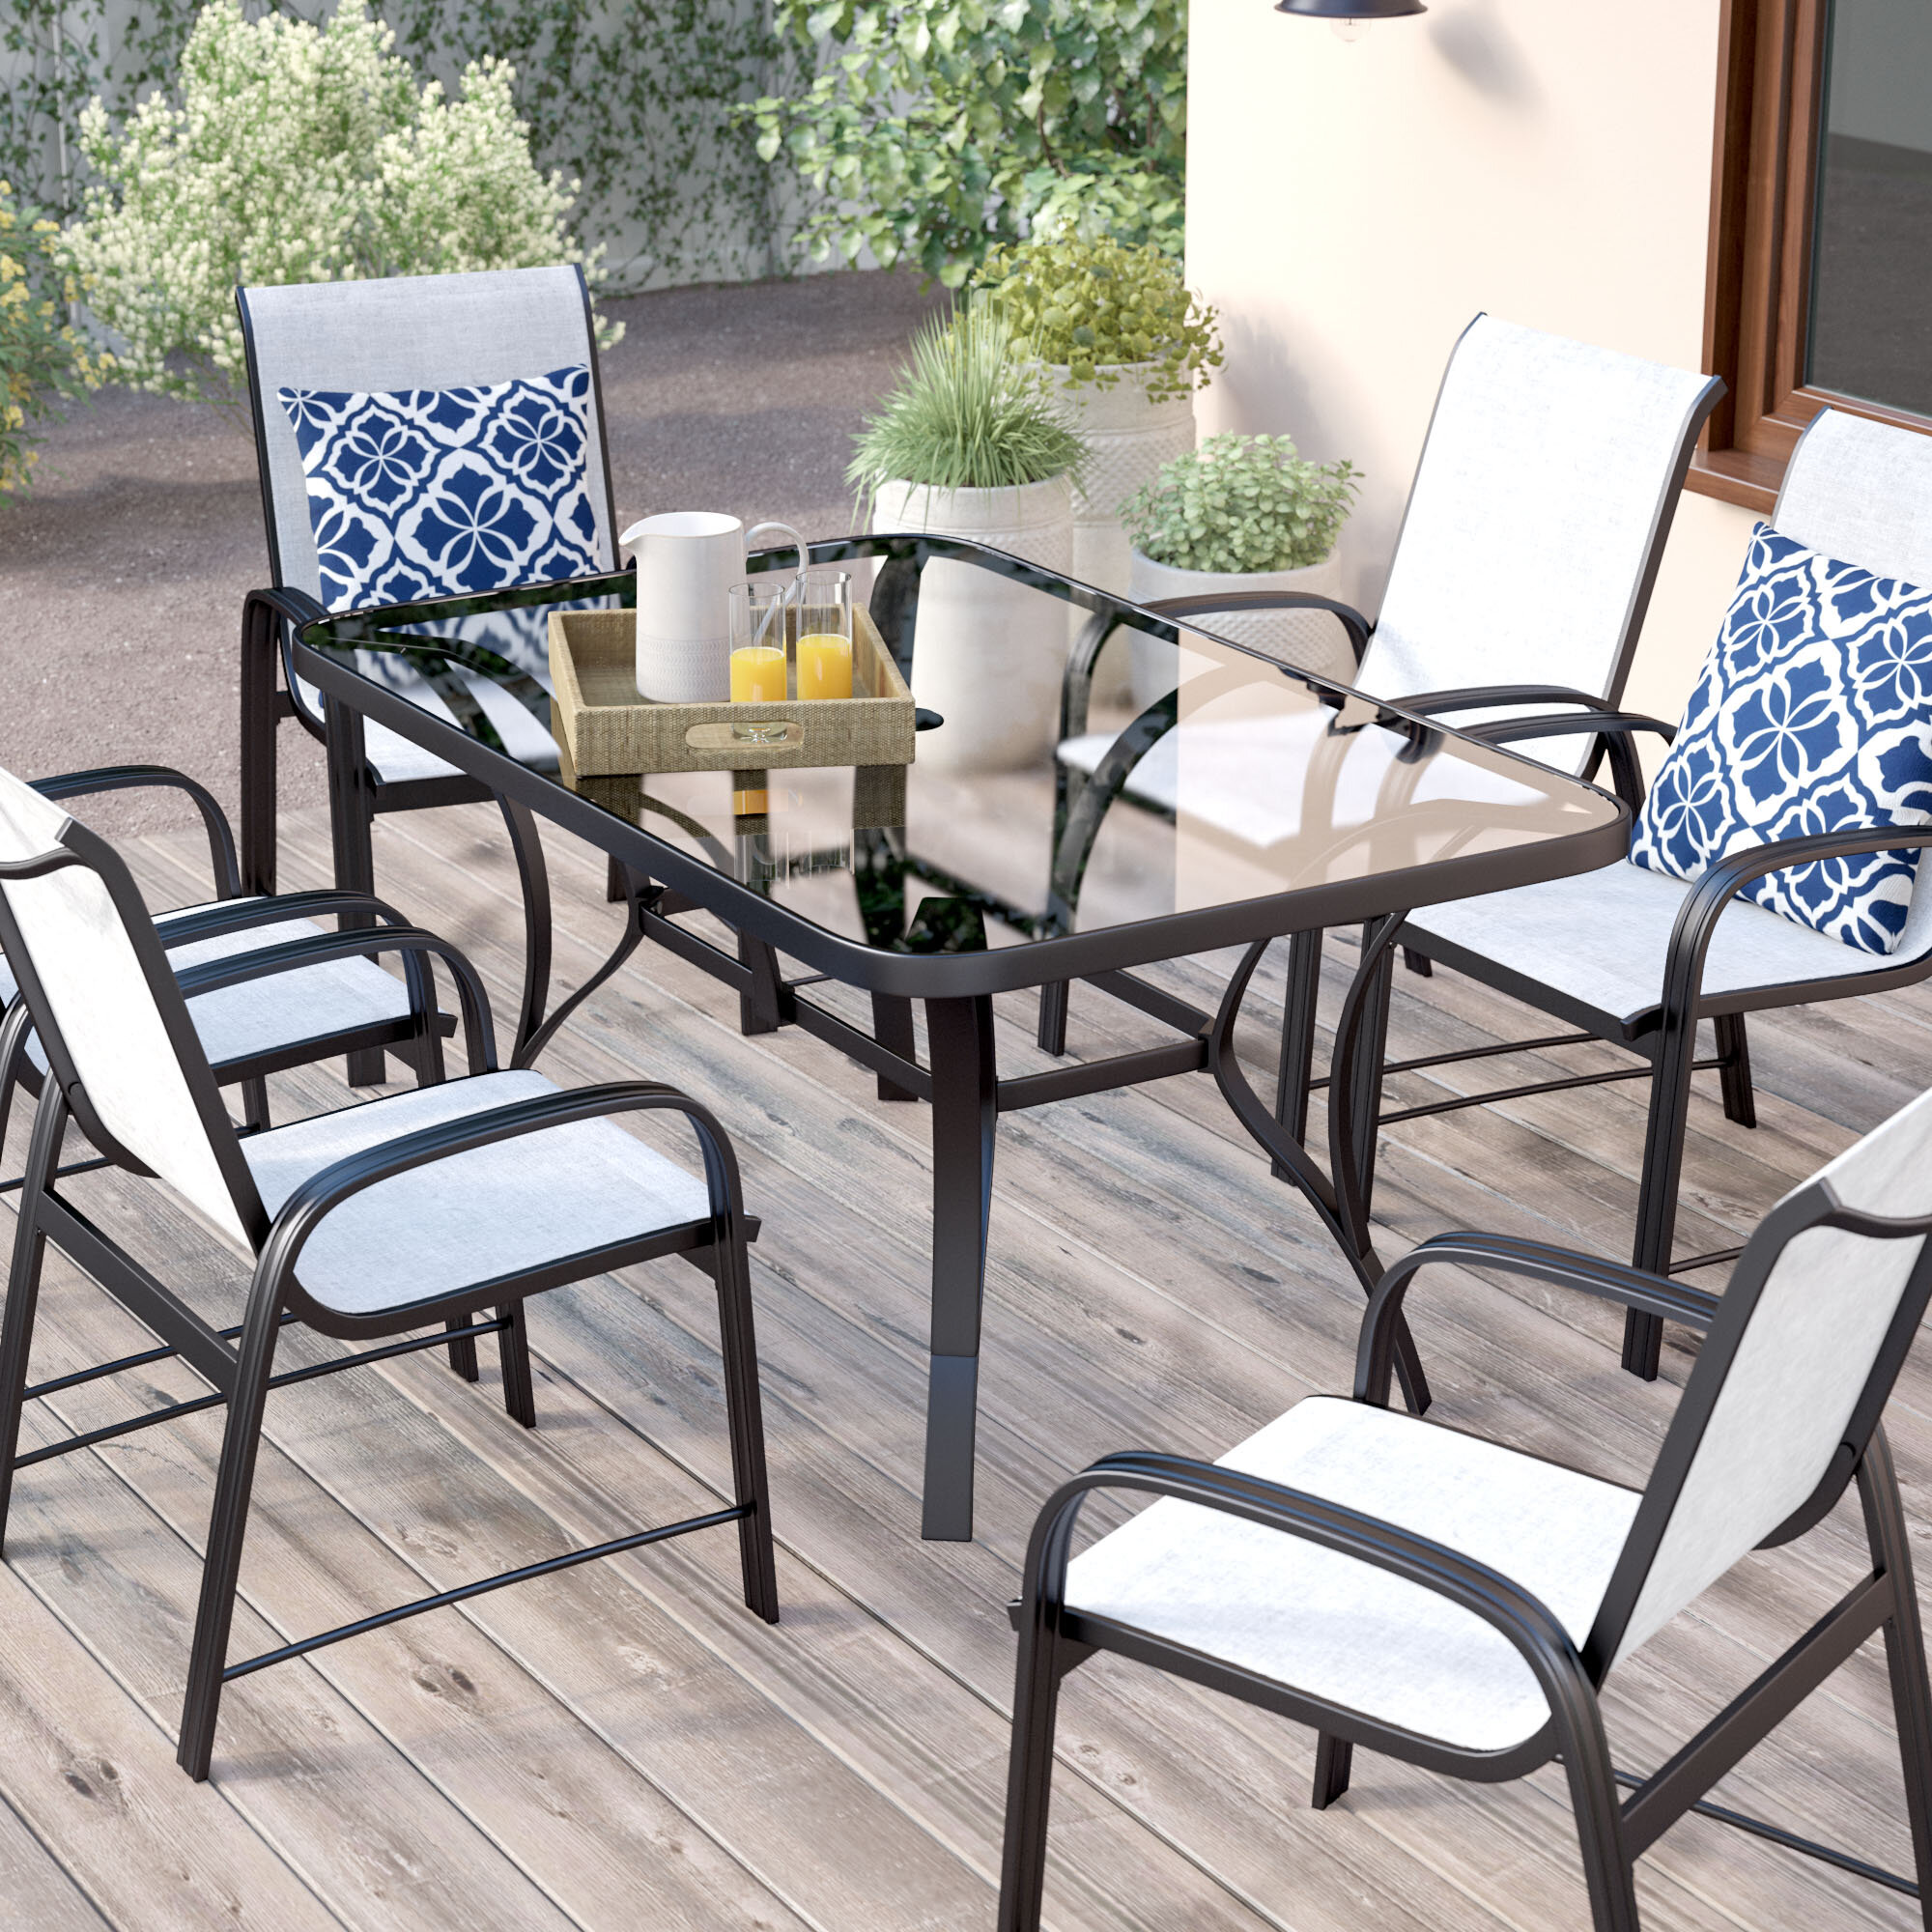 dining owlee lee w patio sf ow classico af set piece